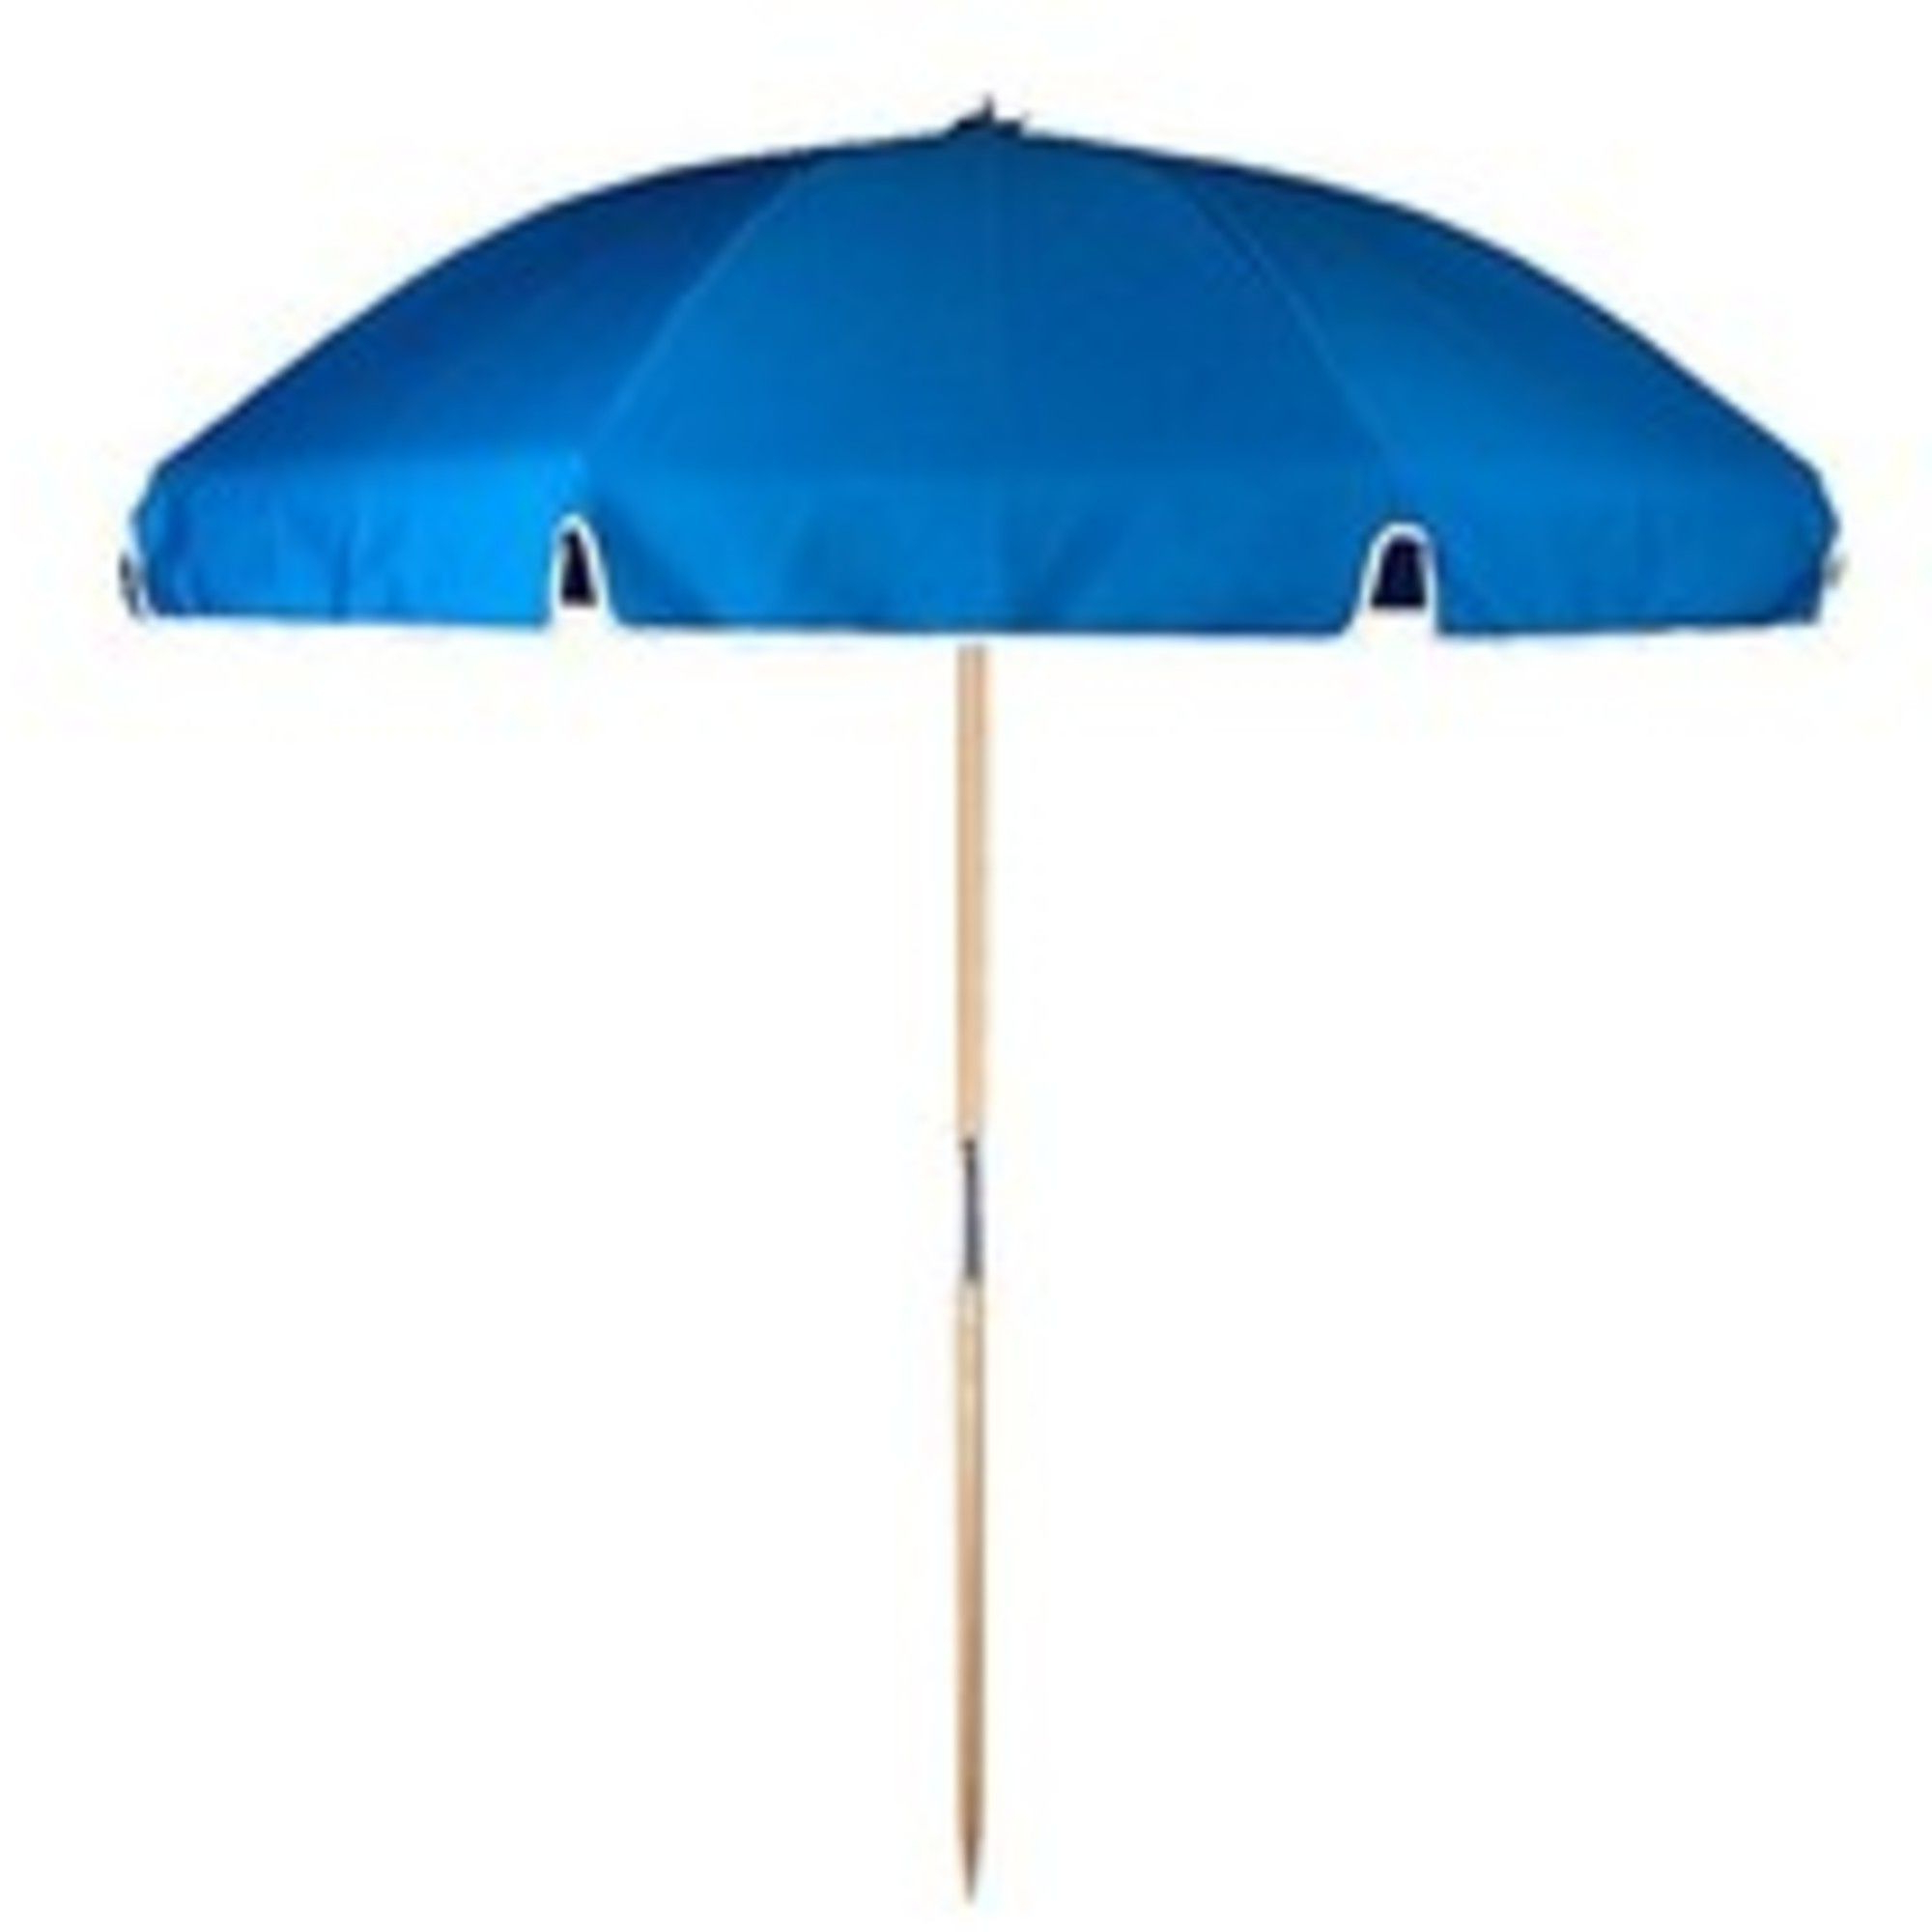 Alyson Joeshade Beach Umbrellas Intended For Popular Heavy Duty Beach Umbrella – Best Wind Resistant And Sun Shade (View 5 of 20)